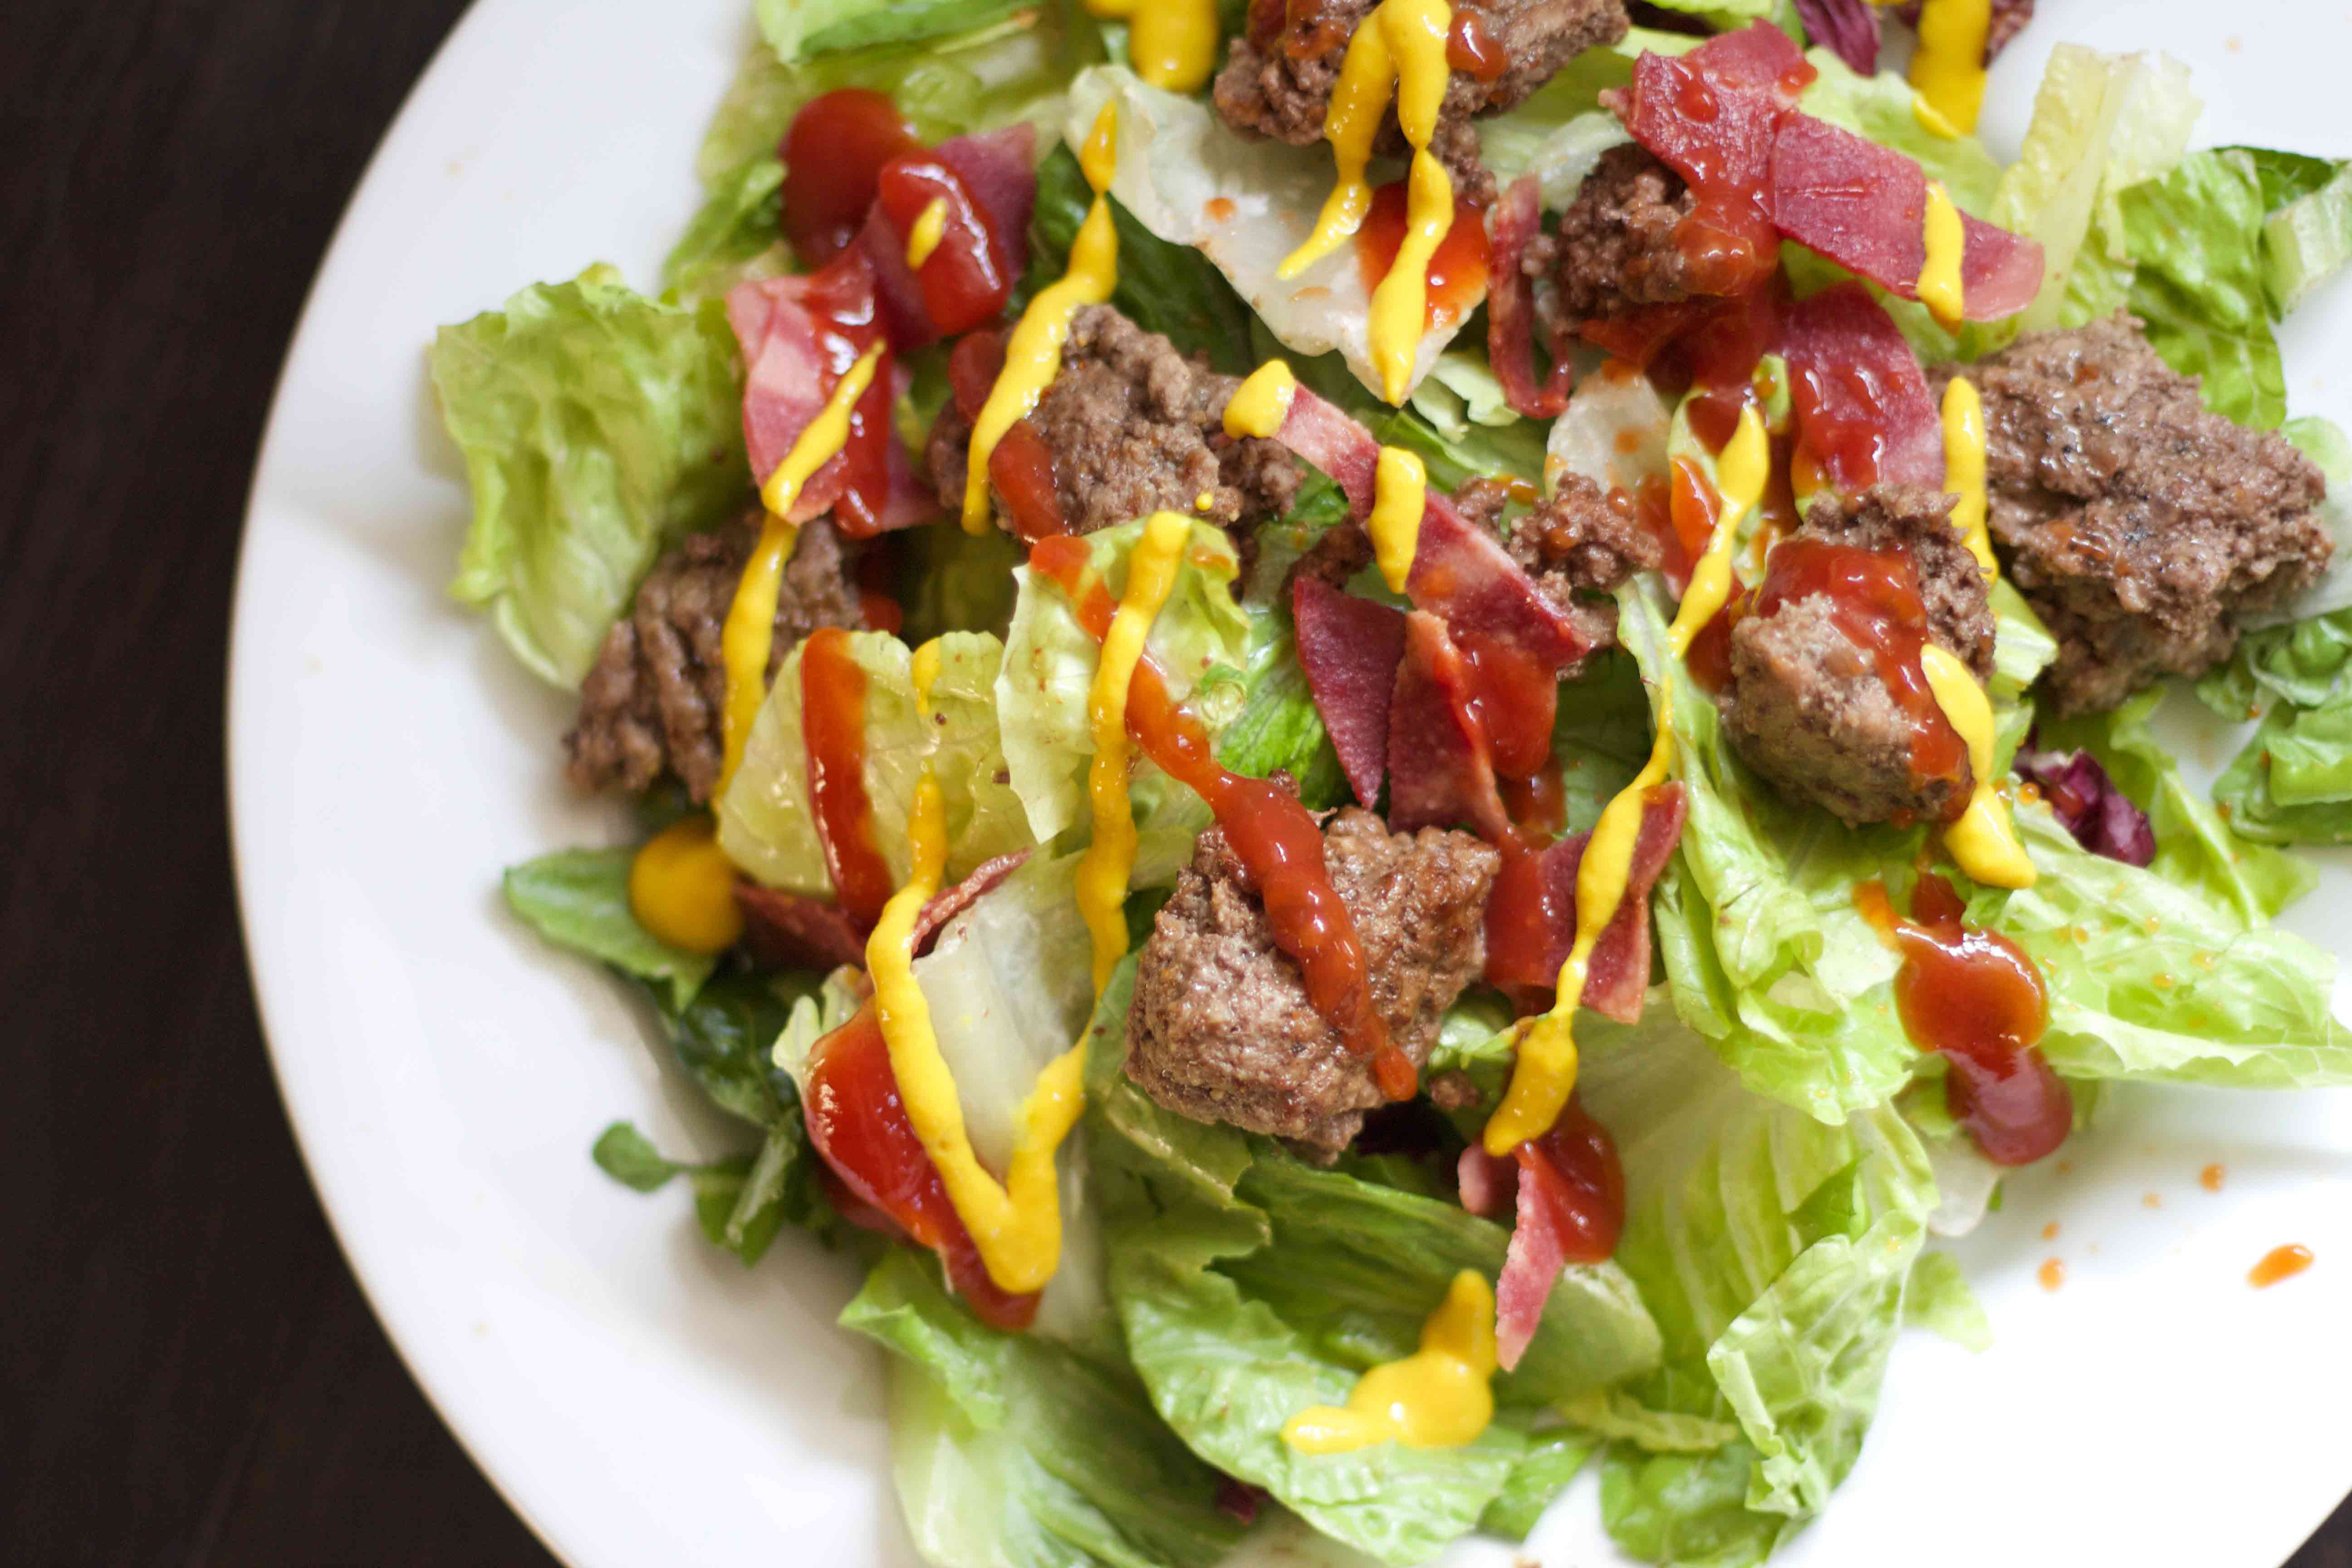 Healthy dinner in a hurry! Hamburger Salad. Low carb and easy recipes at www.foodcoach.me